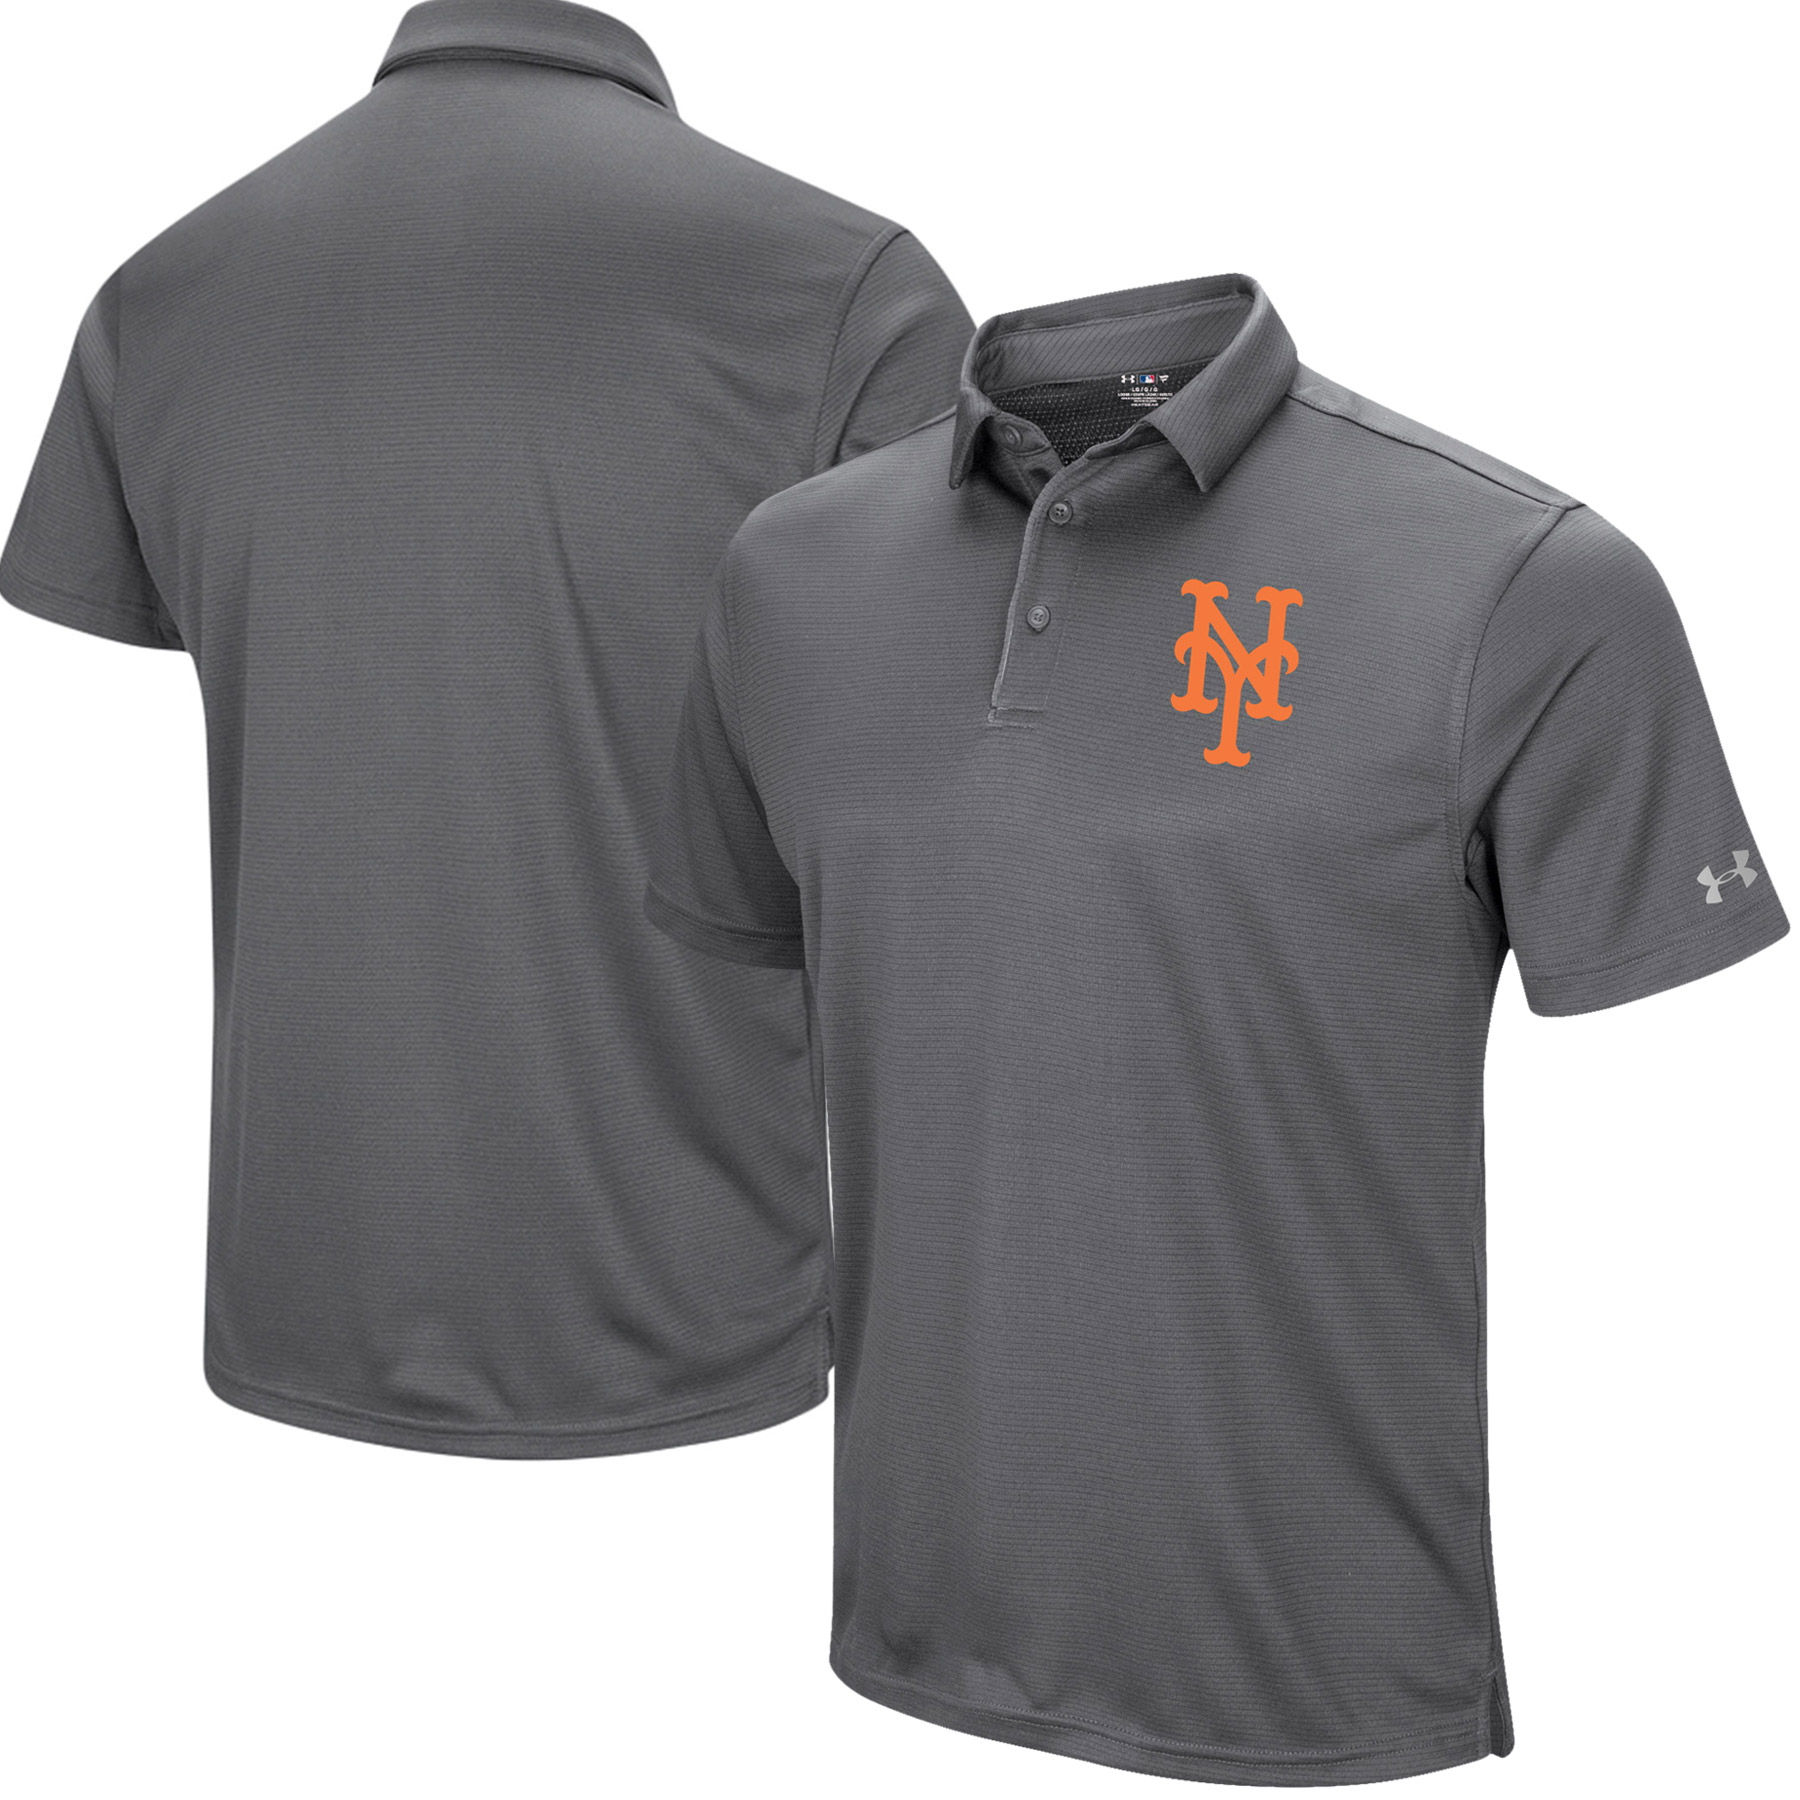 New York Mets Under Armour UA Tech Left Chest Polo - Gray